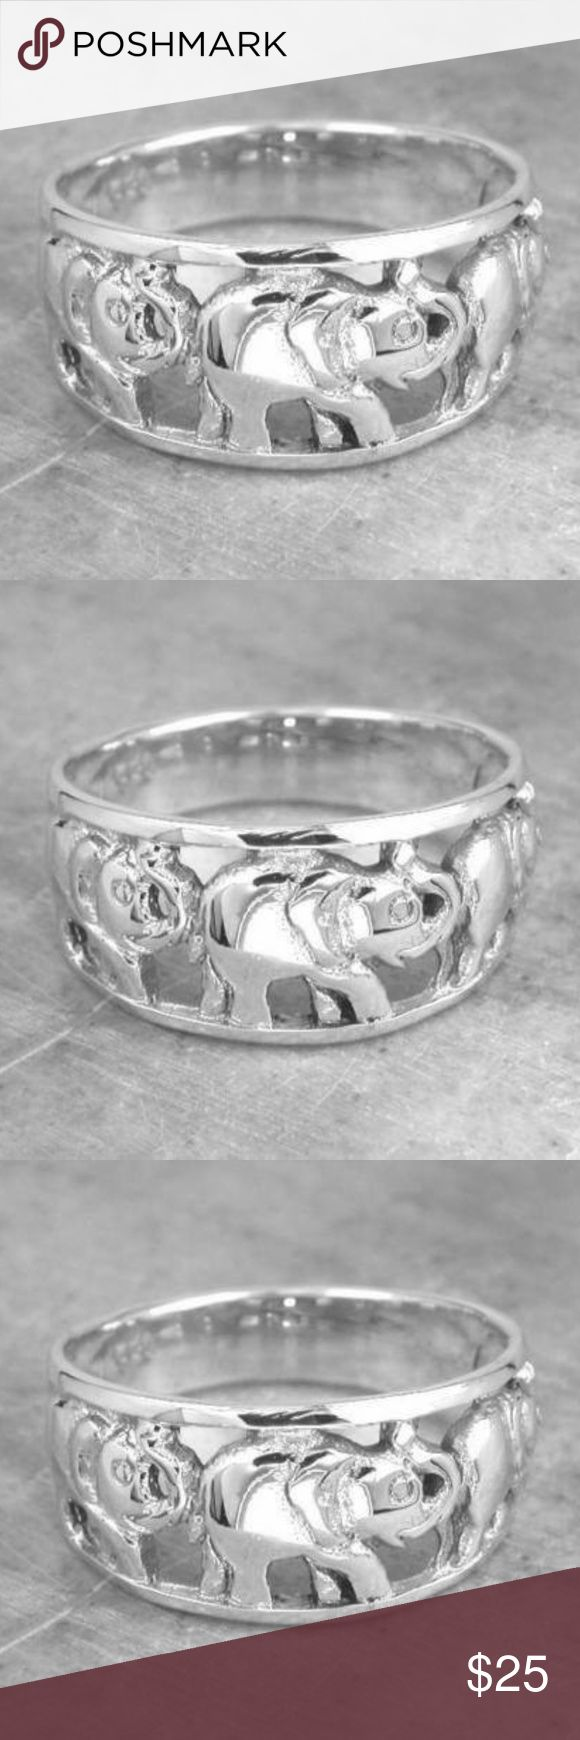 STERLING SILVER LUCKY ELEPHANTS RING .925 STERLING SILVER ELEPHANTS RING SIZE 6 Lucky Brand Jewelry Rings